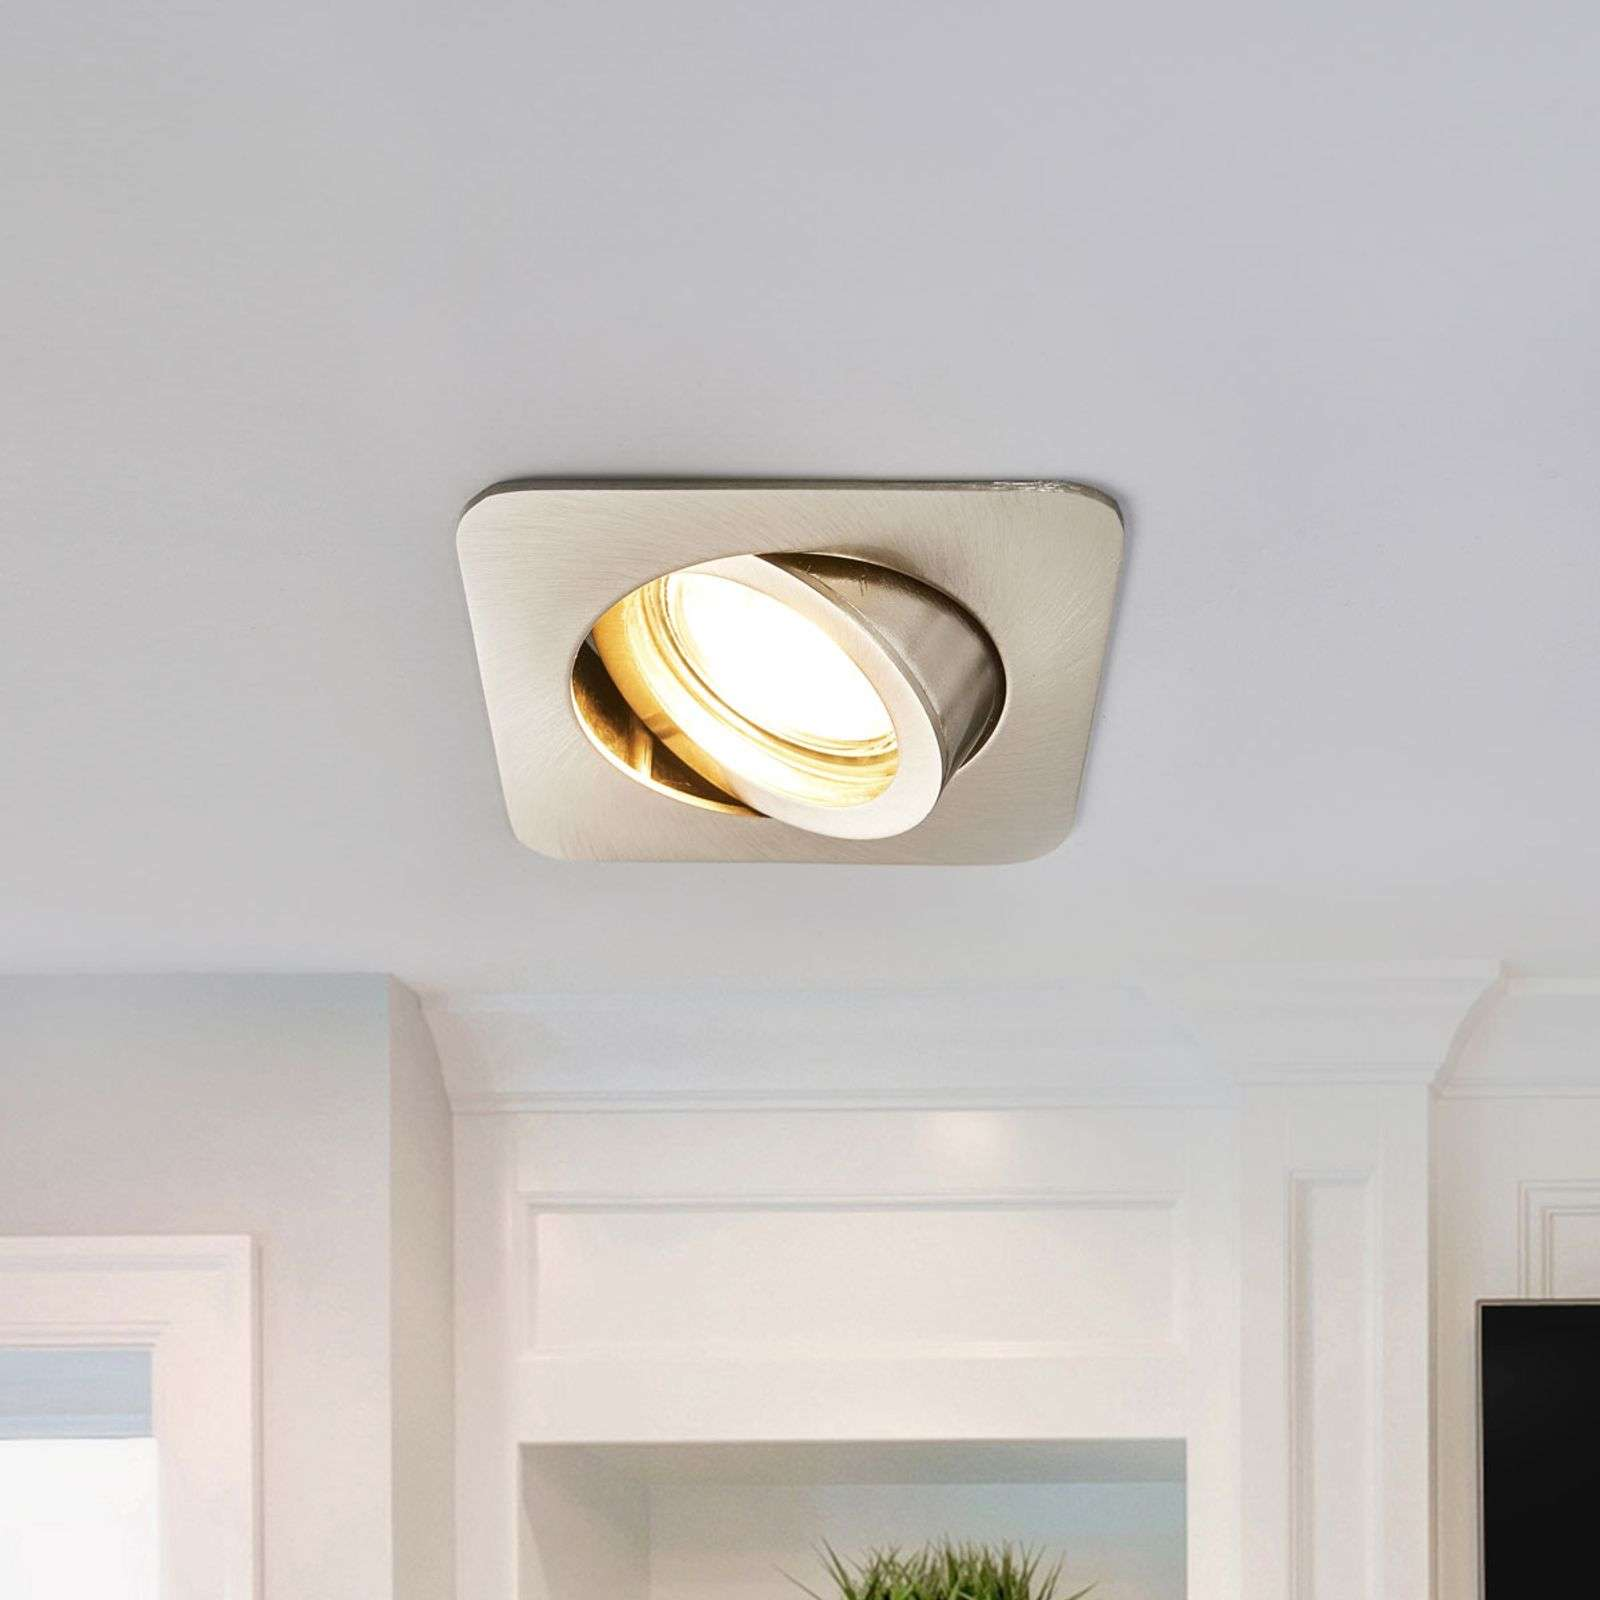 Charna - square recessed LED light in nickel